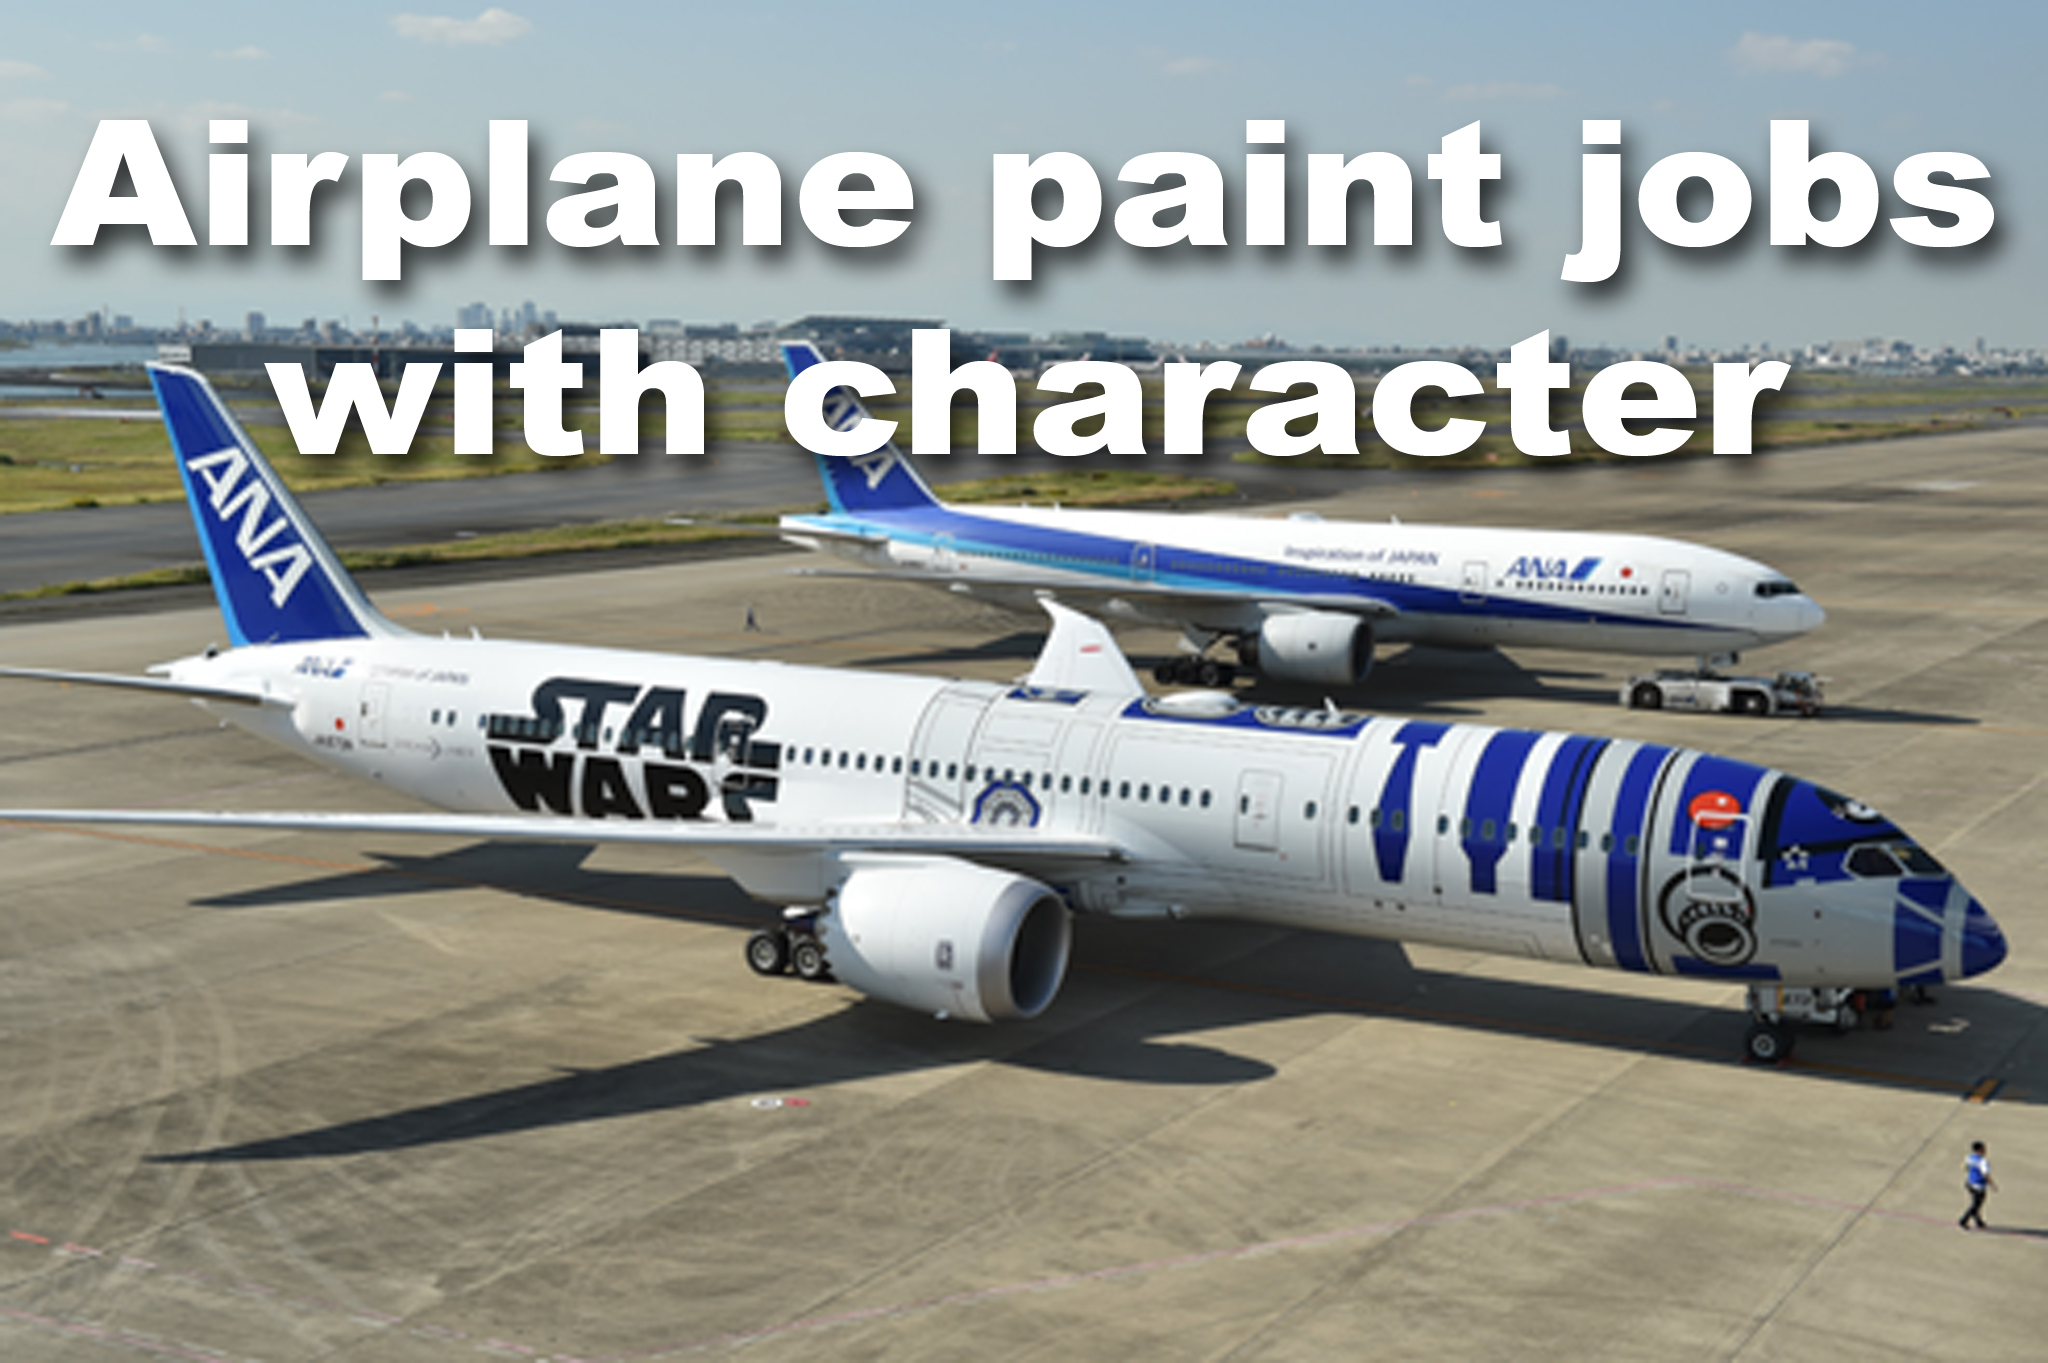 airplane paint jobs with character seattlepi com